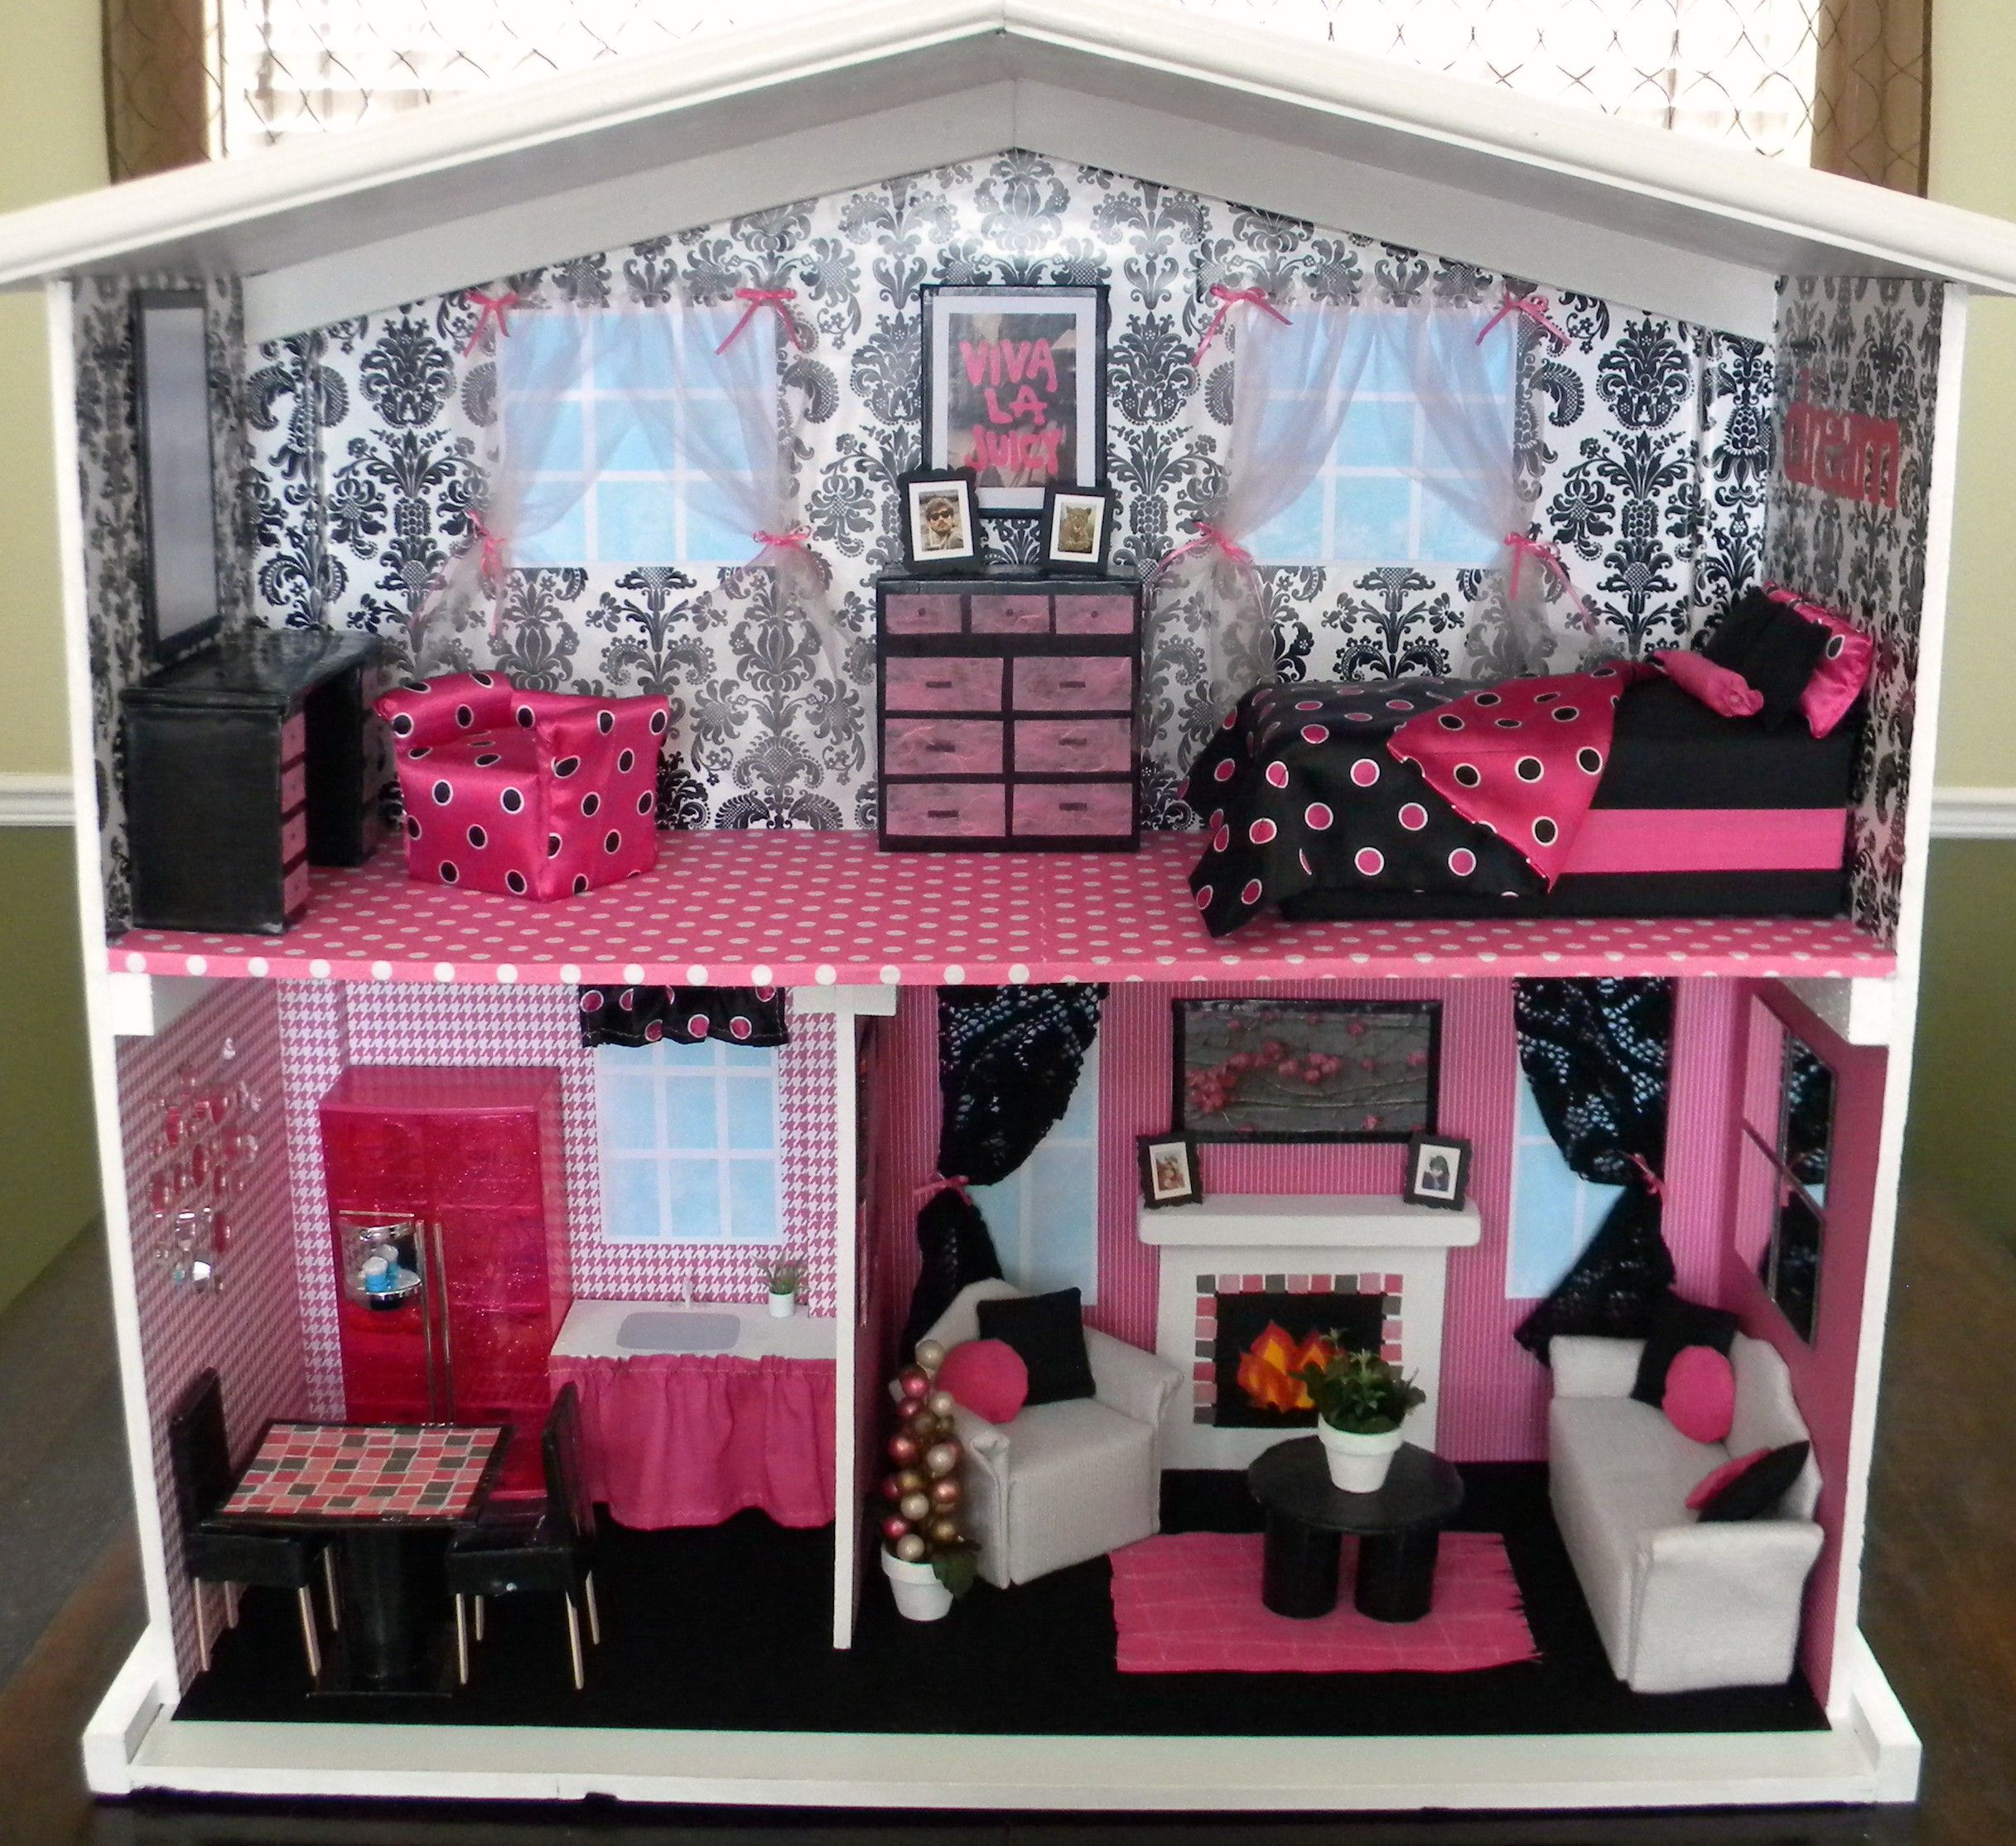 The 7 reasons why you need furniture for your barbie dolls barbie house apples and house - Reasons why you need stacking chairs ...